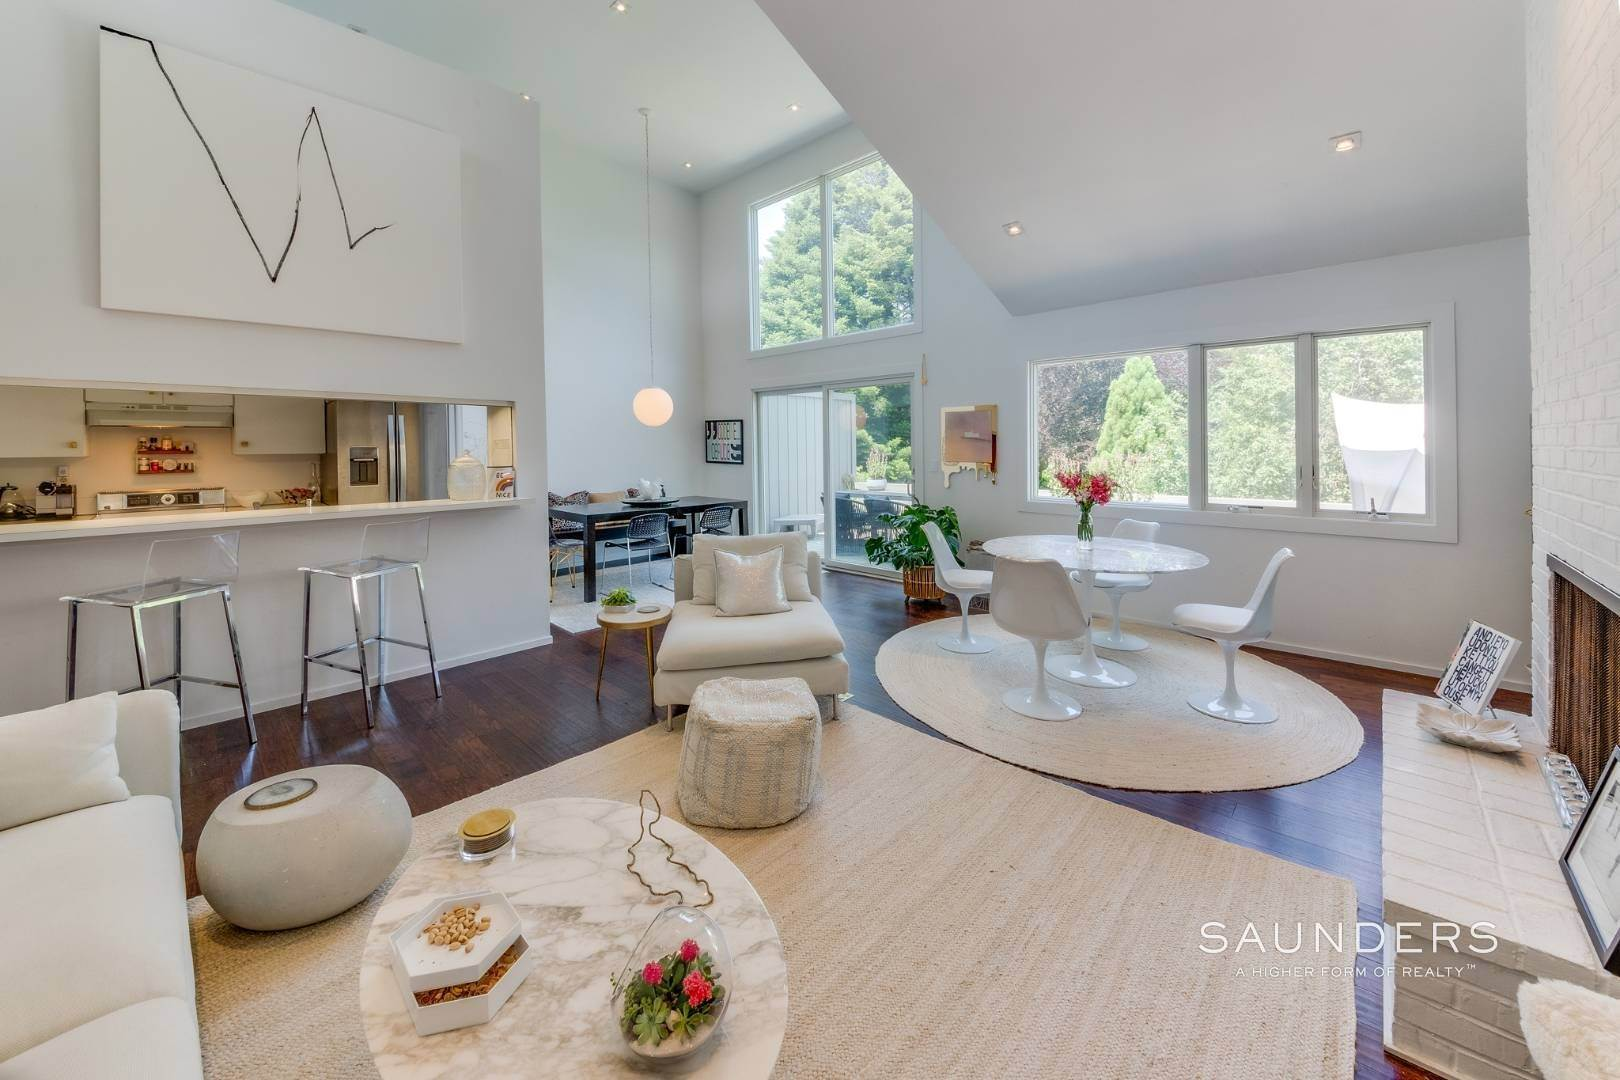 Condominiums at Newly Renovated East Hampton Co-Op Undisclosed Address, East Hampton, East Hampton Town, NY 11937